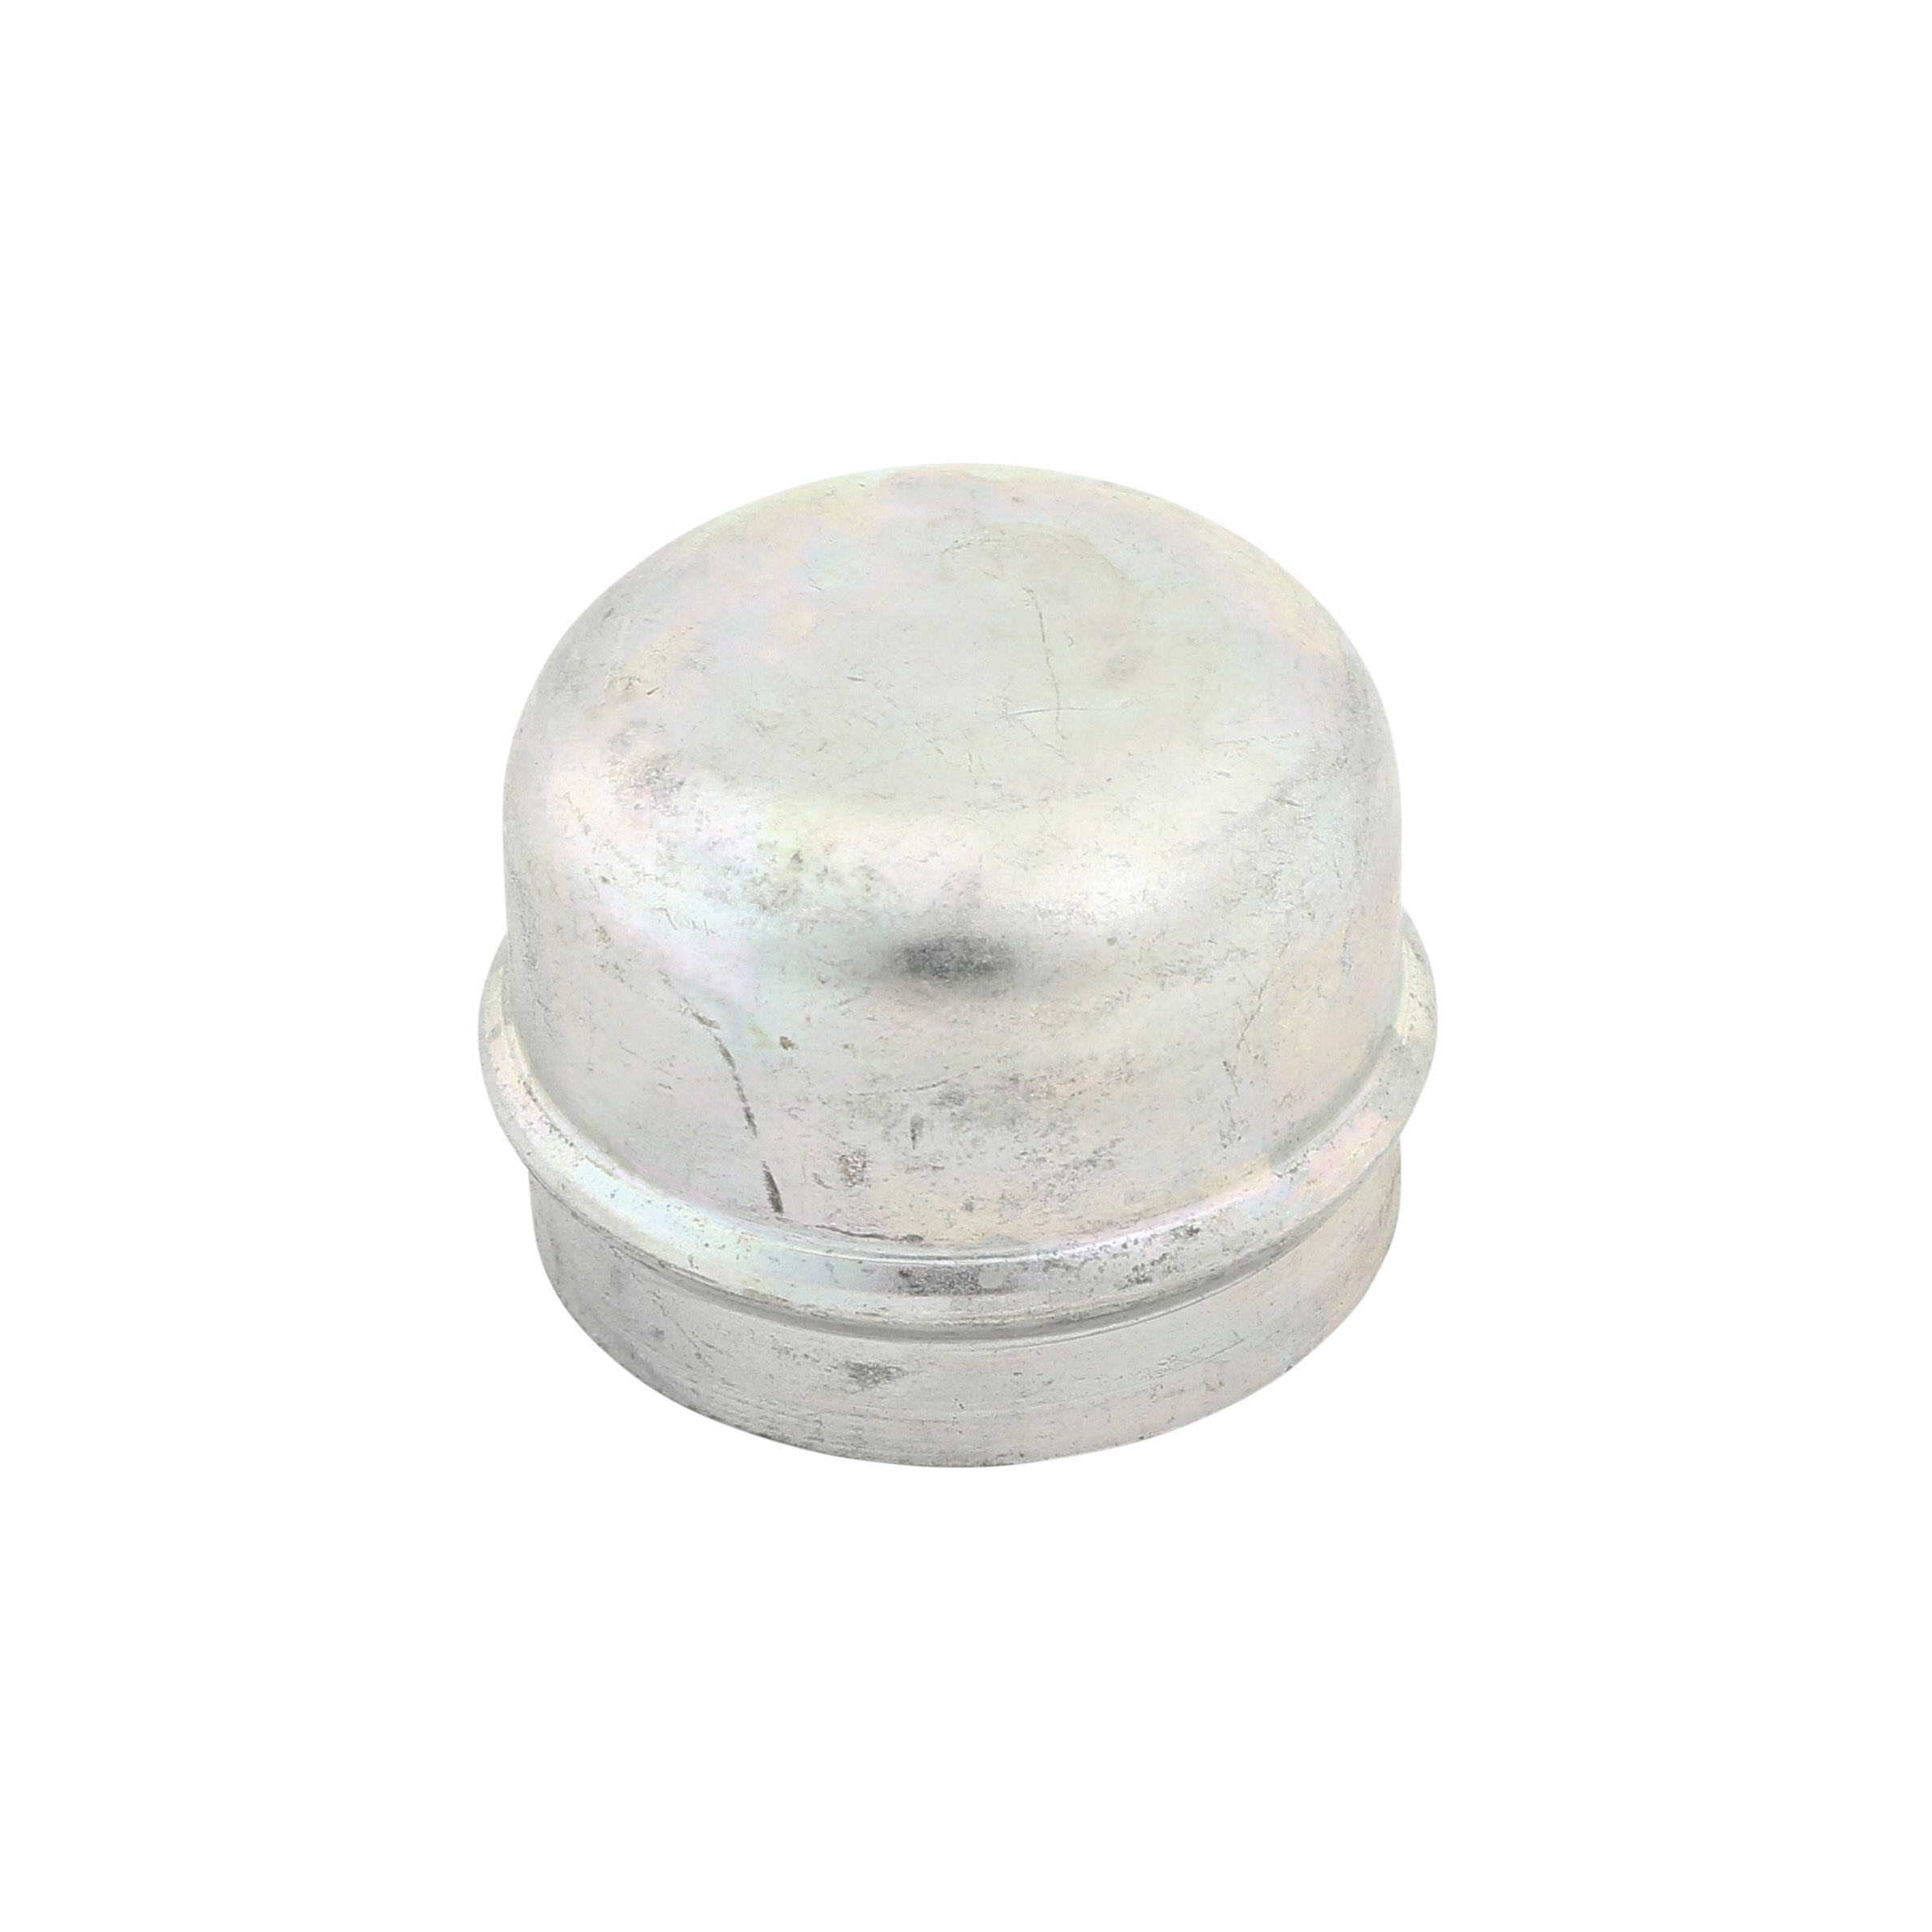 Wheel Hub Dust Cap (Front - Push In) • 1928-48 Ford